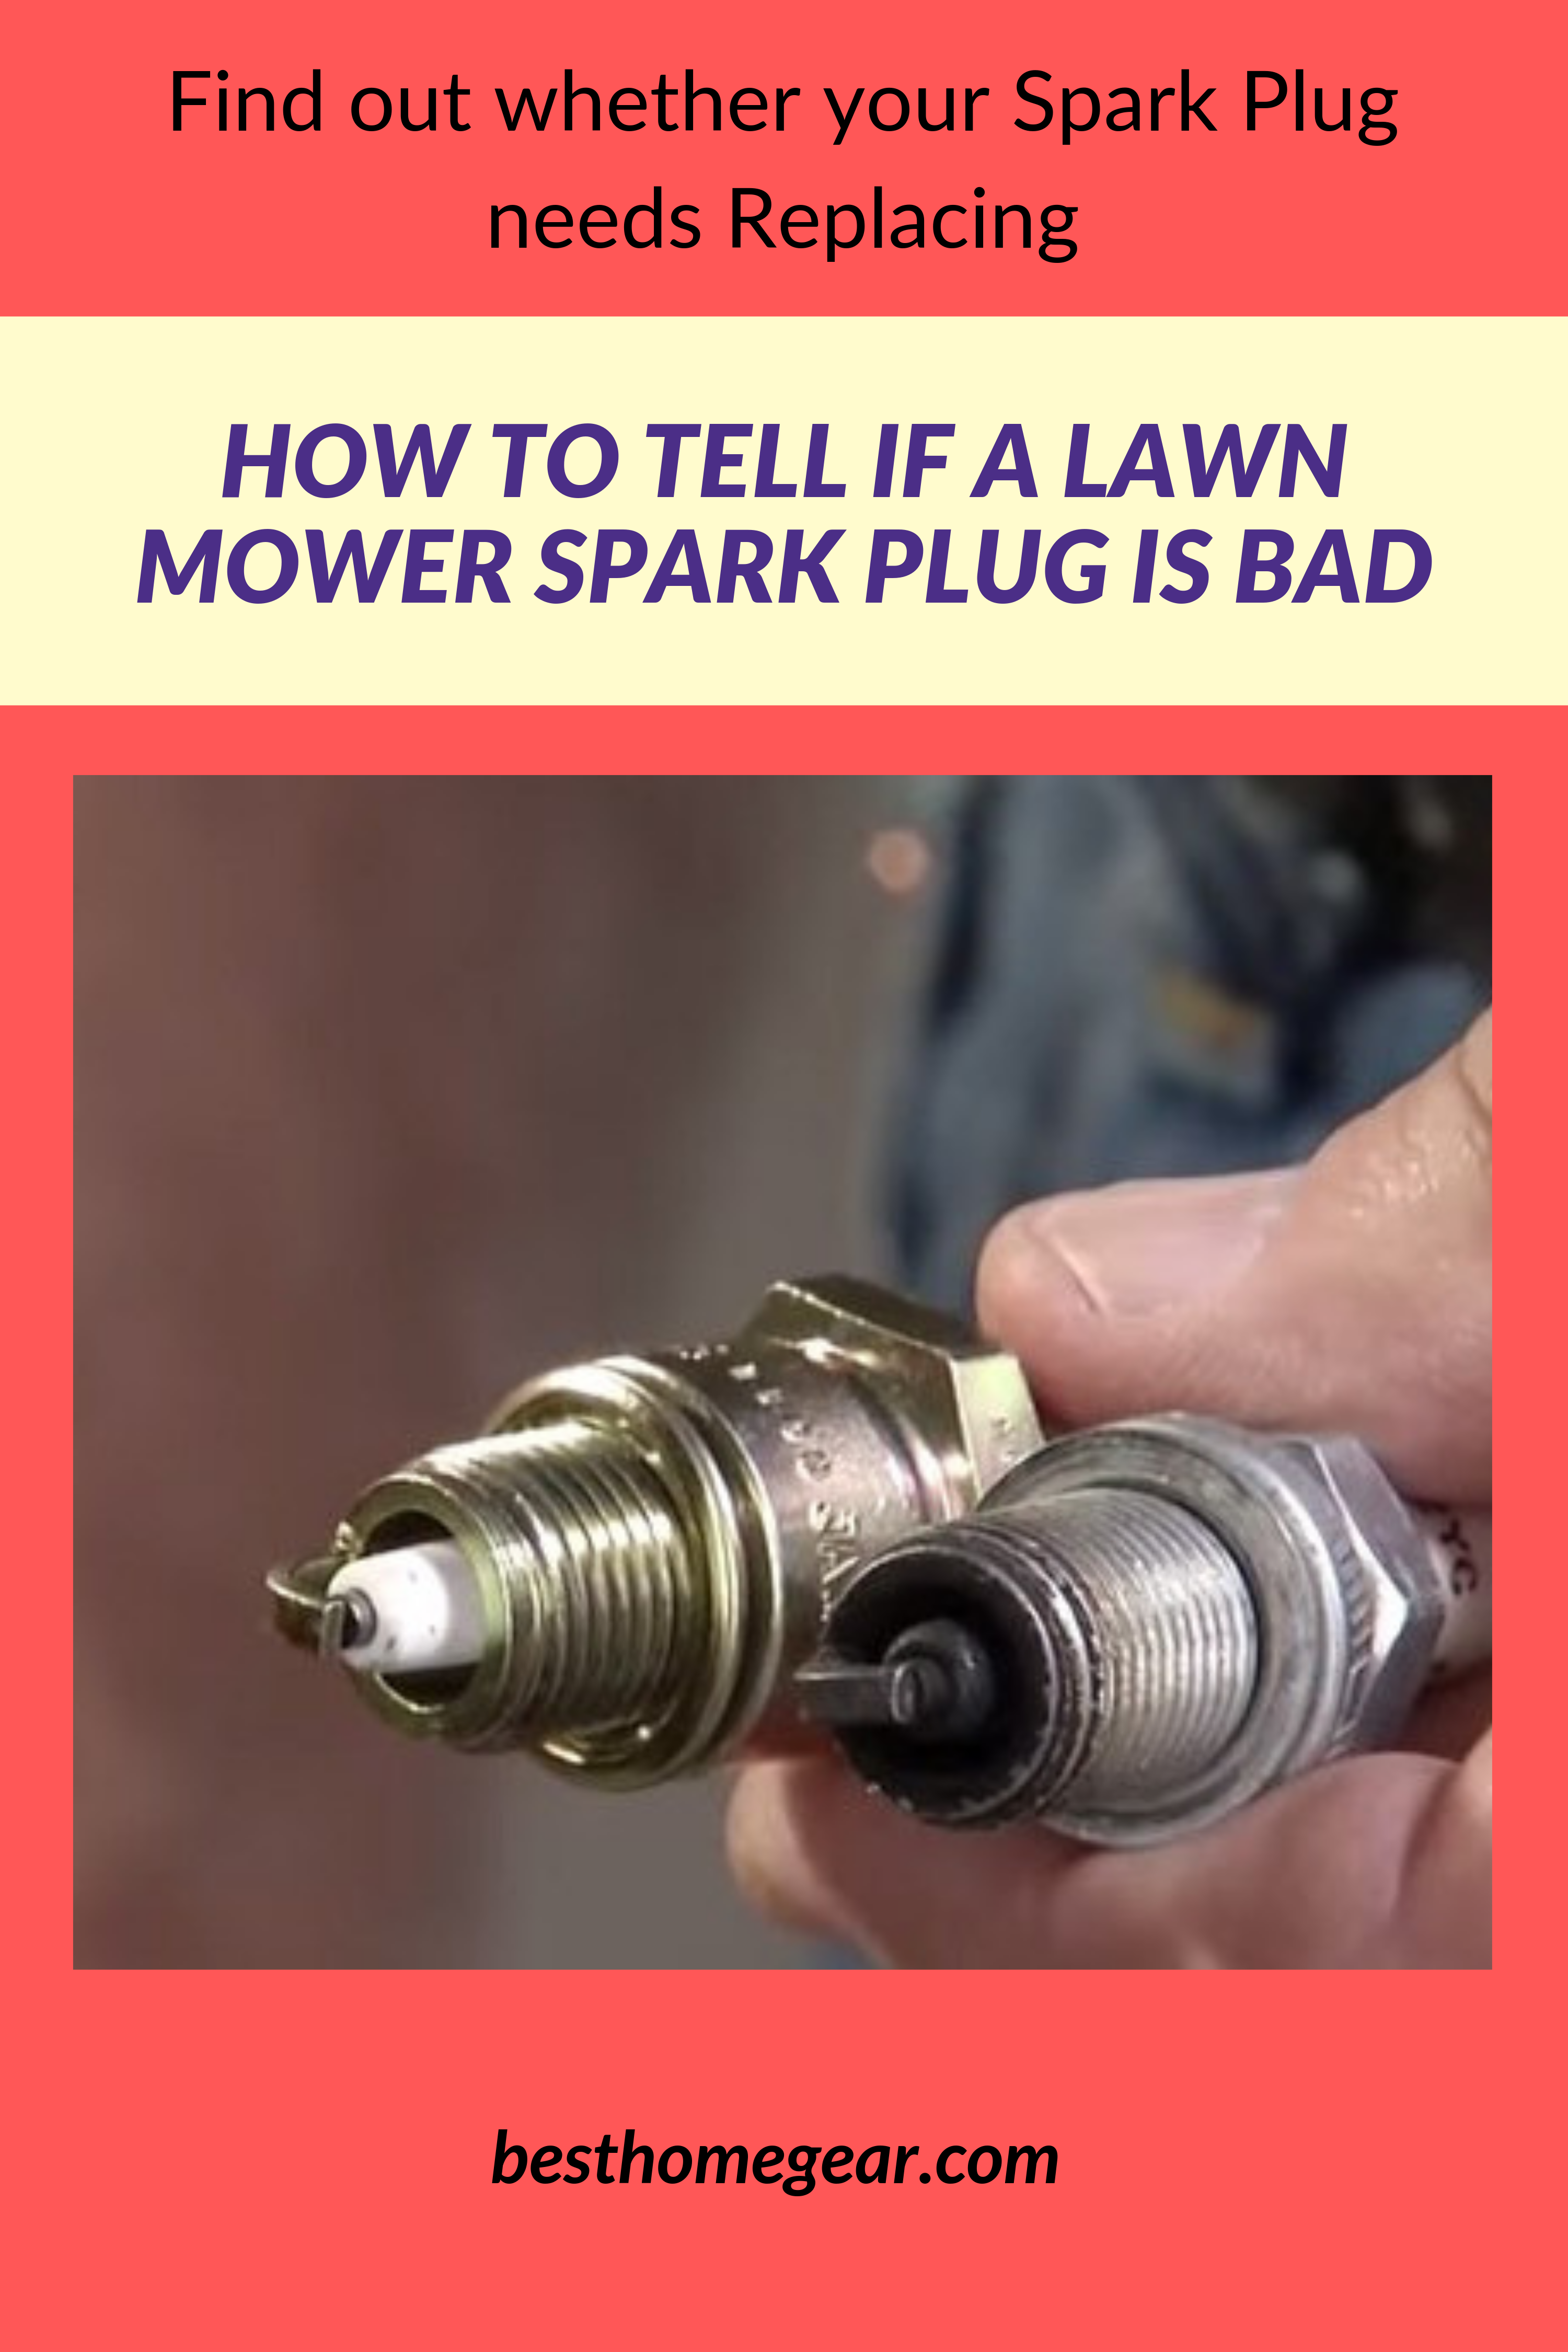 How To Tell If A Lawn Mower Spark Plug Is Bad Spark Plug Lawn Mower Lawn Mower Maintenance